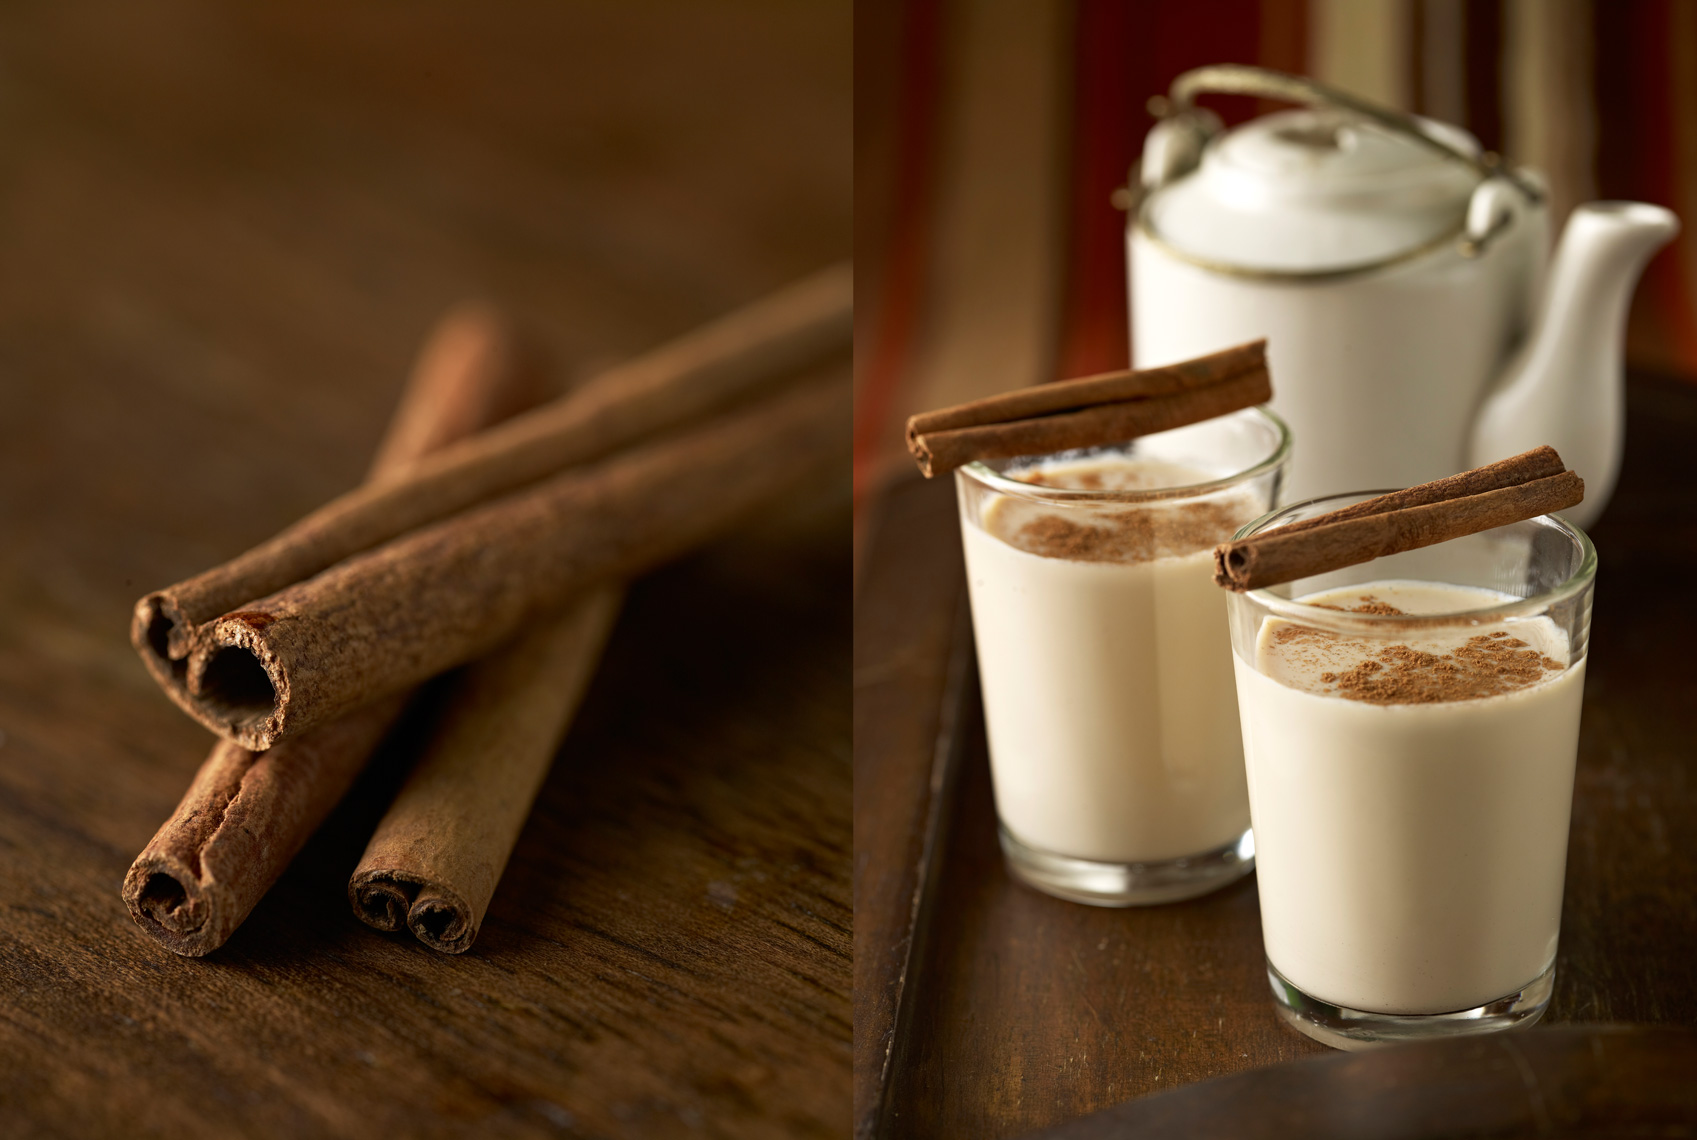 F041_food_shot_cinnamon_milk_tea.jpg